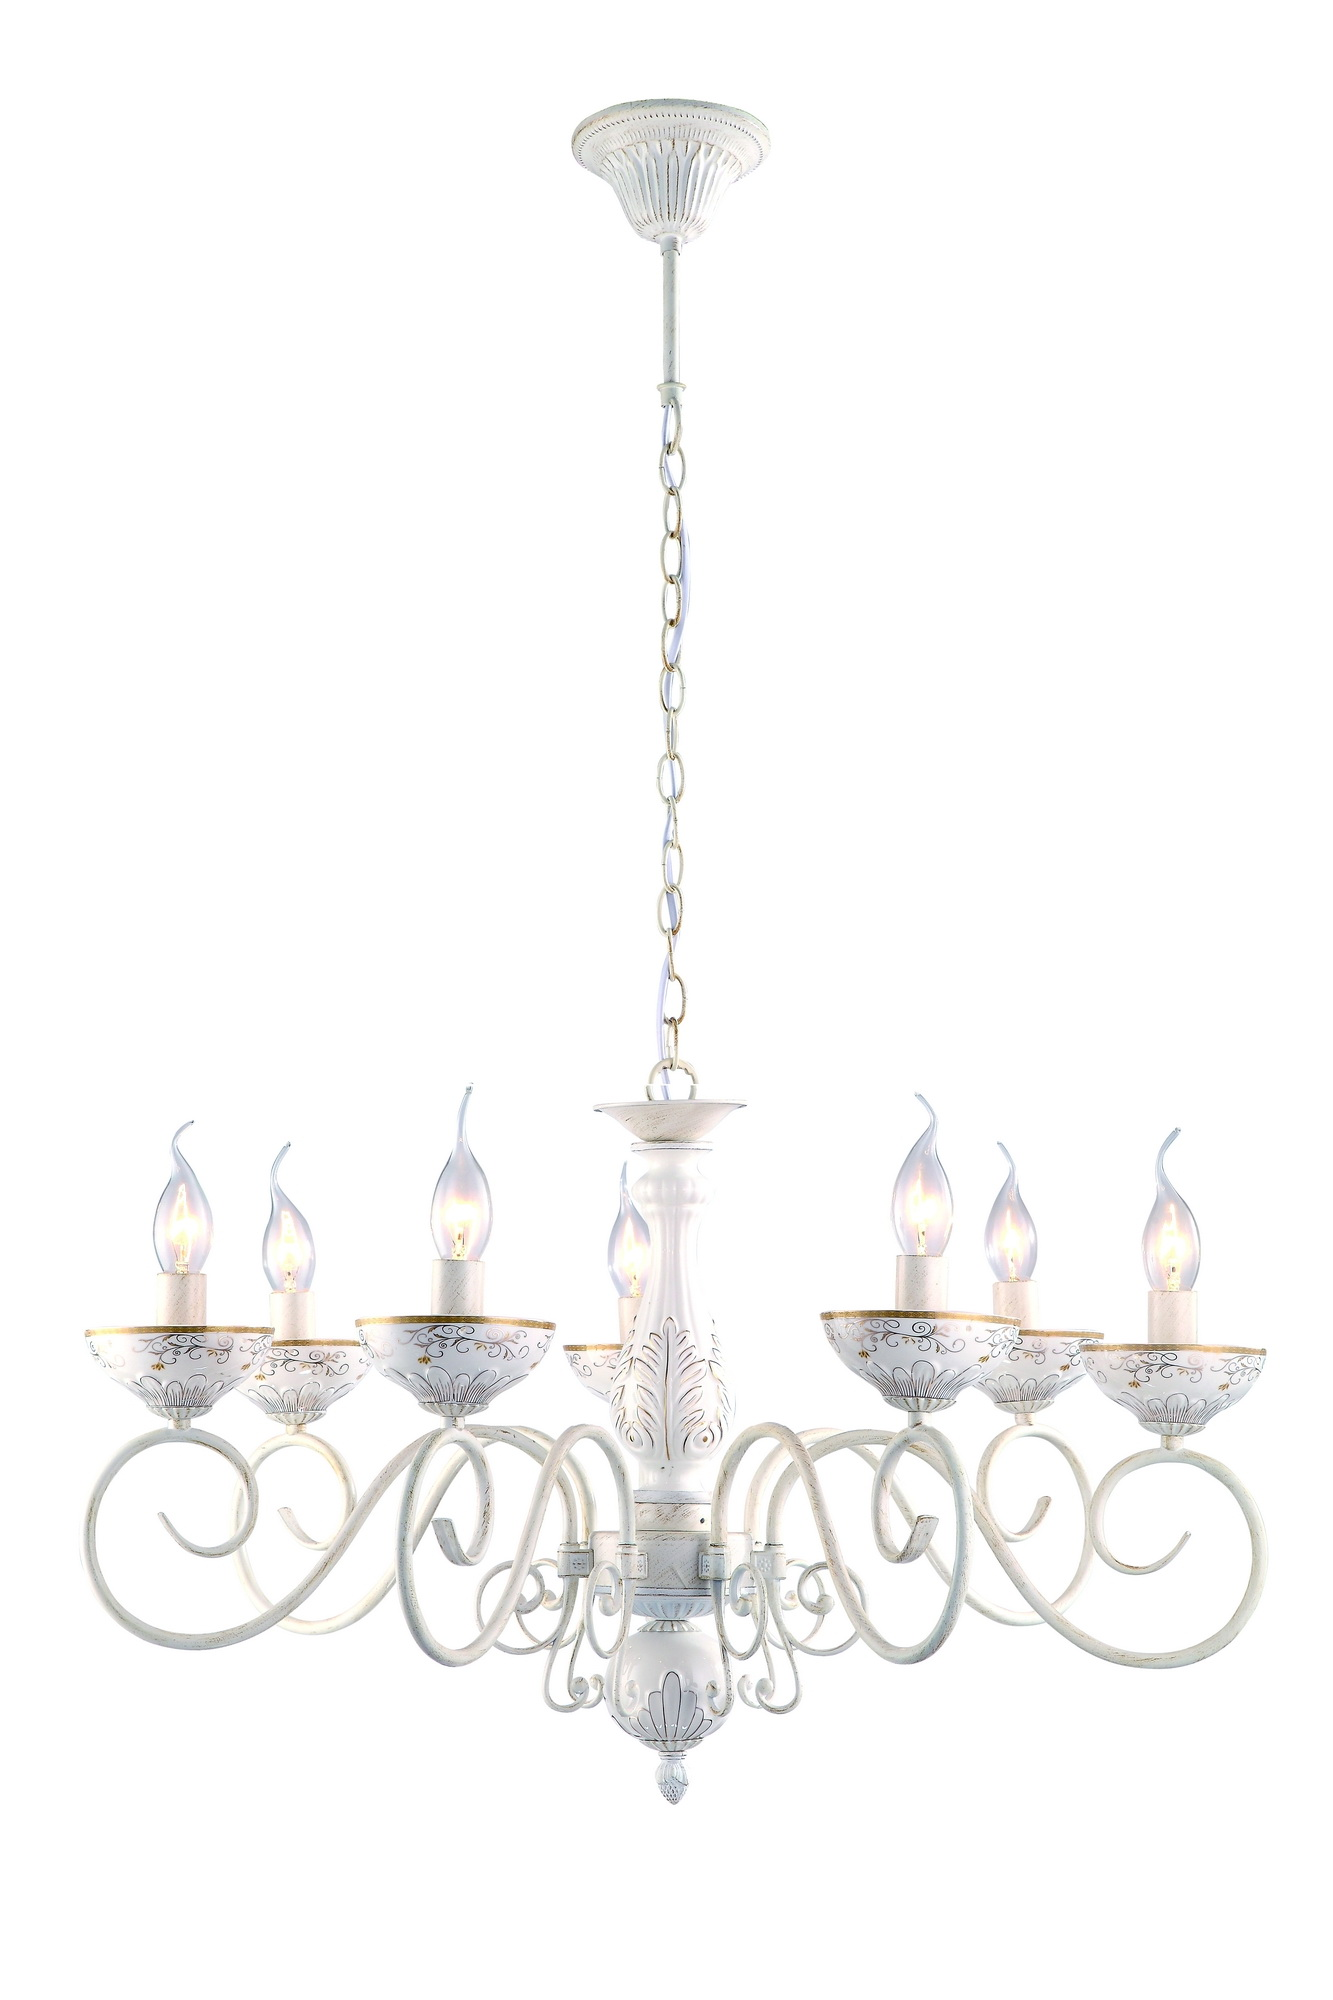 Люстра Arte lamp Lucia a9594lm-7wg arte lamp lucia a9594lm 7wg